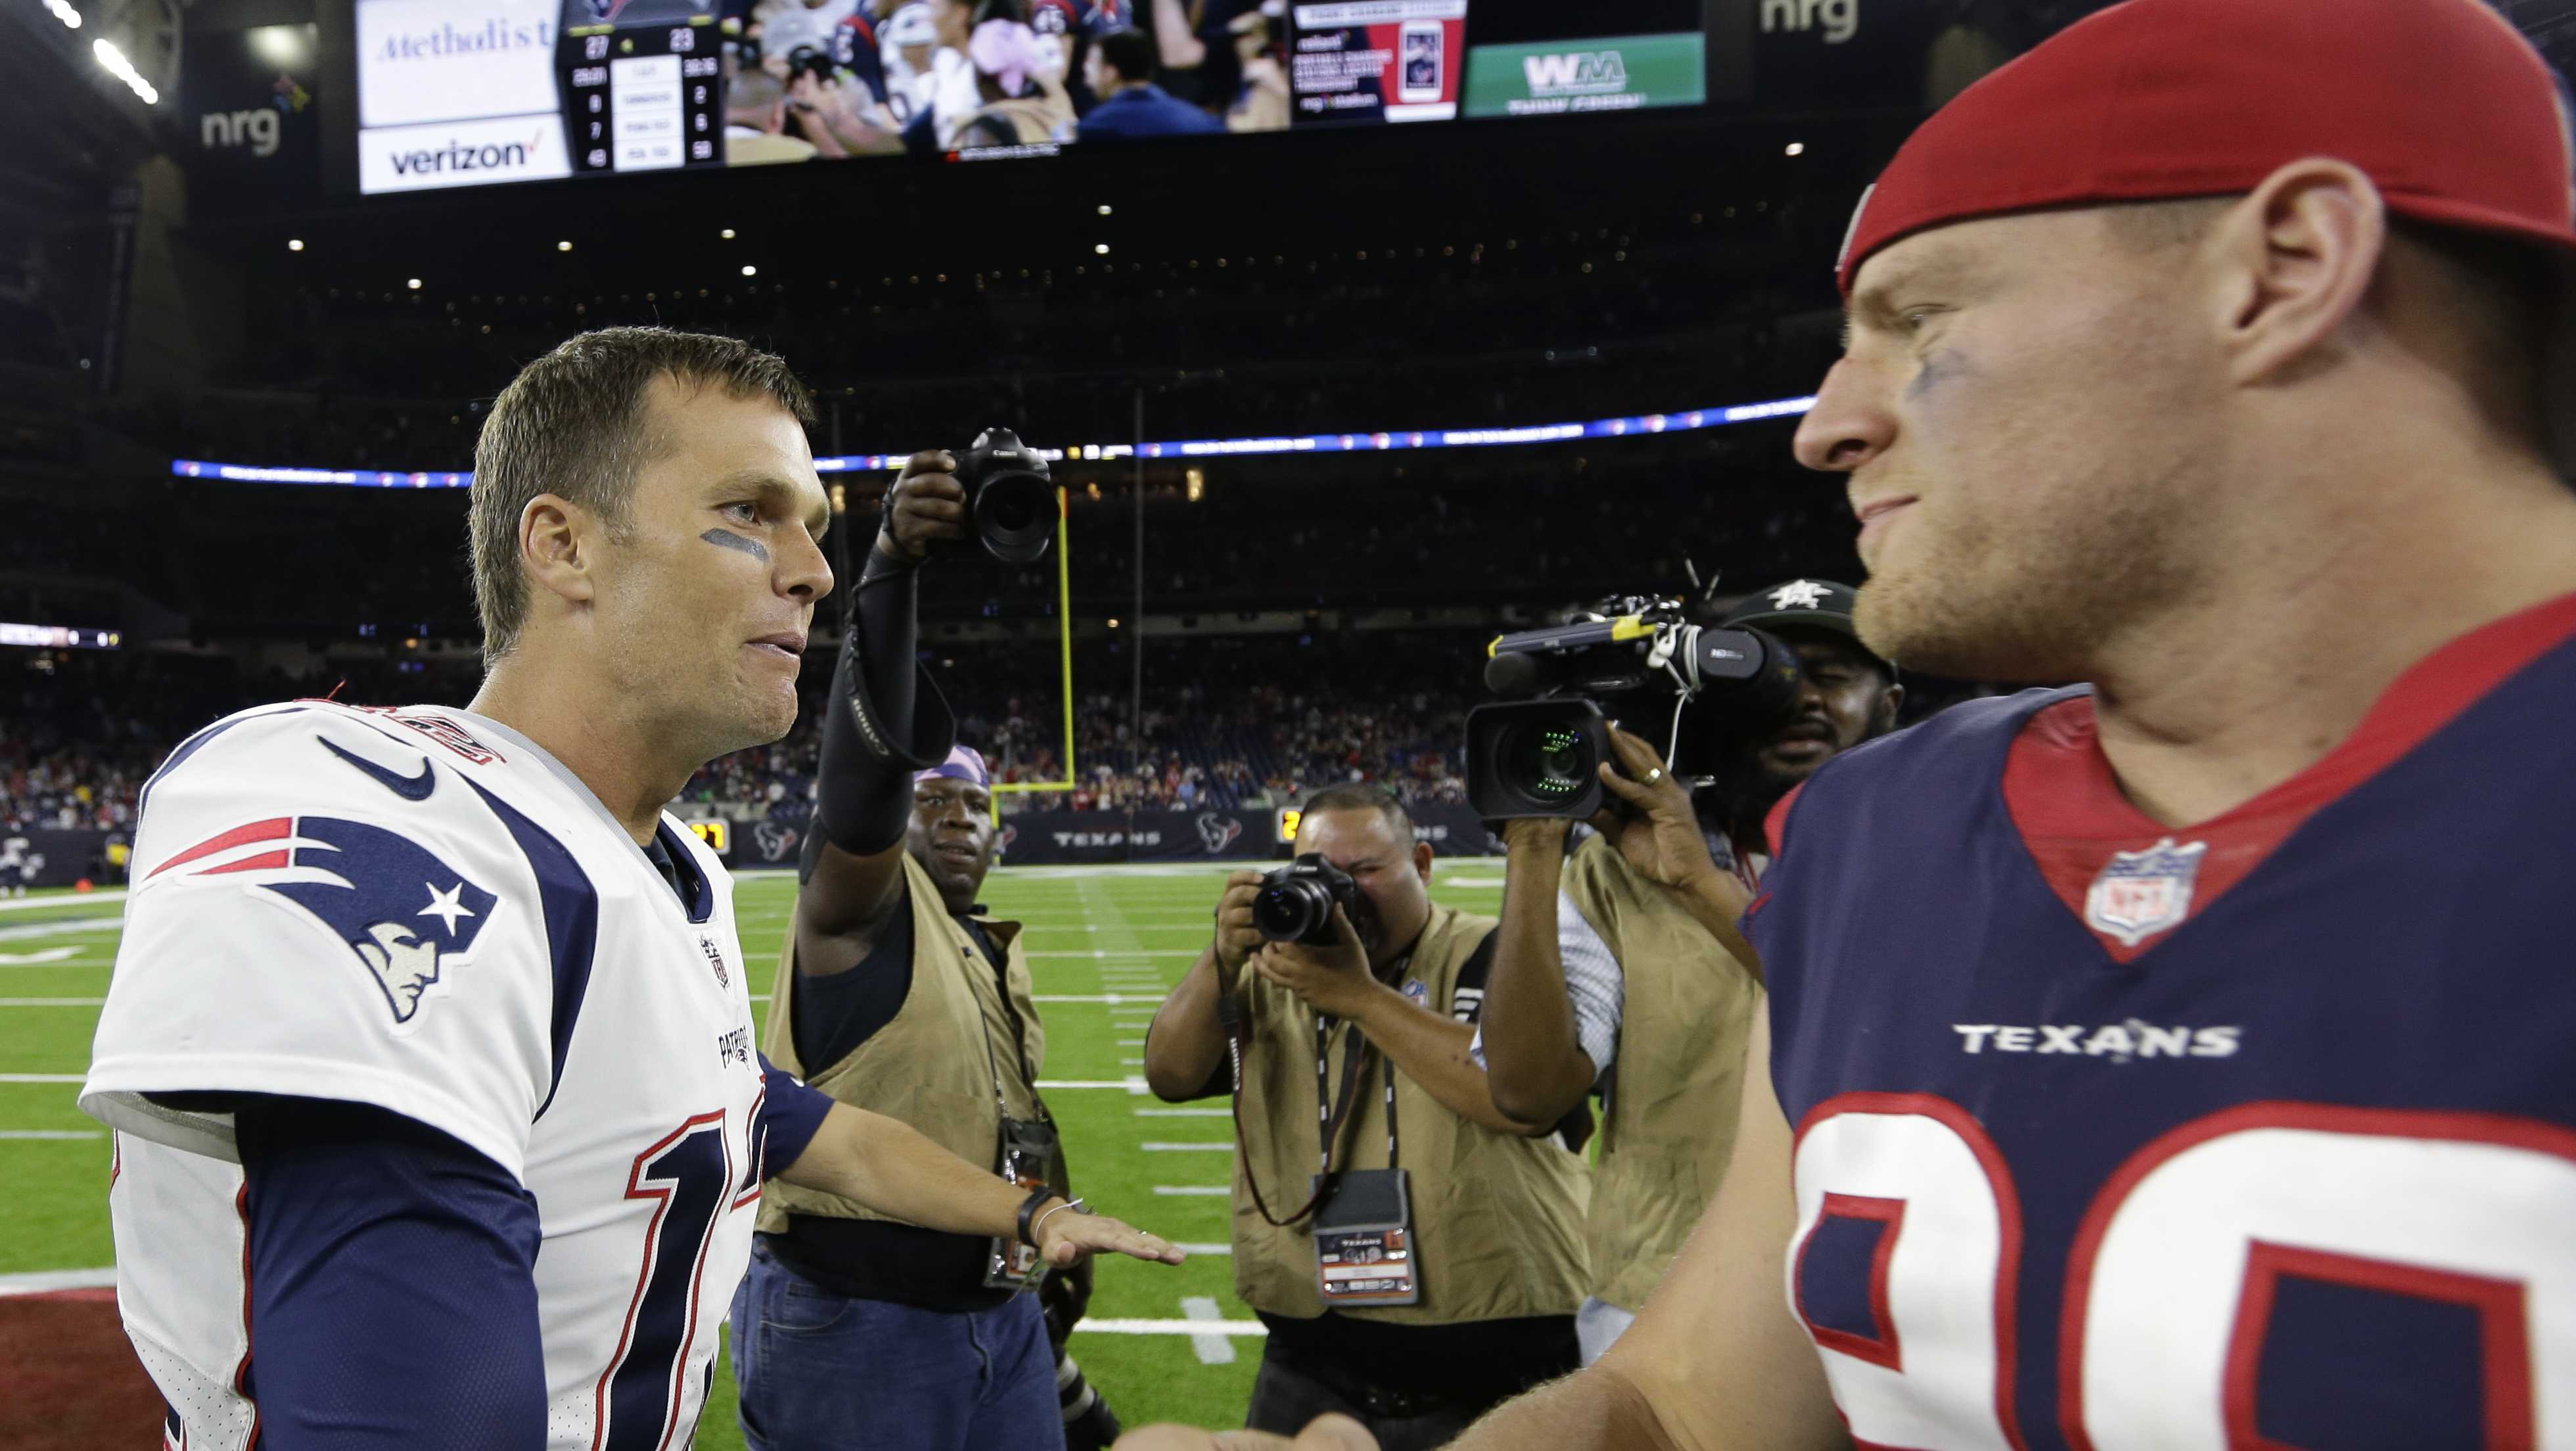 New England Patriots quarterback Tom Brady, left, greets Houston Texans defensive end J.J. Watt, right, following an NFL football preseason game Saturday, Aug. 19, 2017, in Houston.